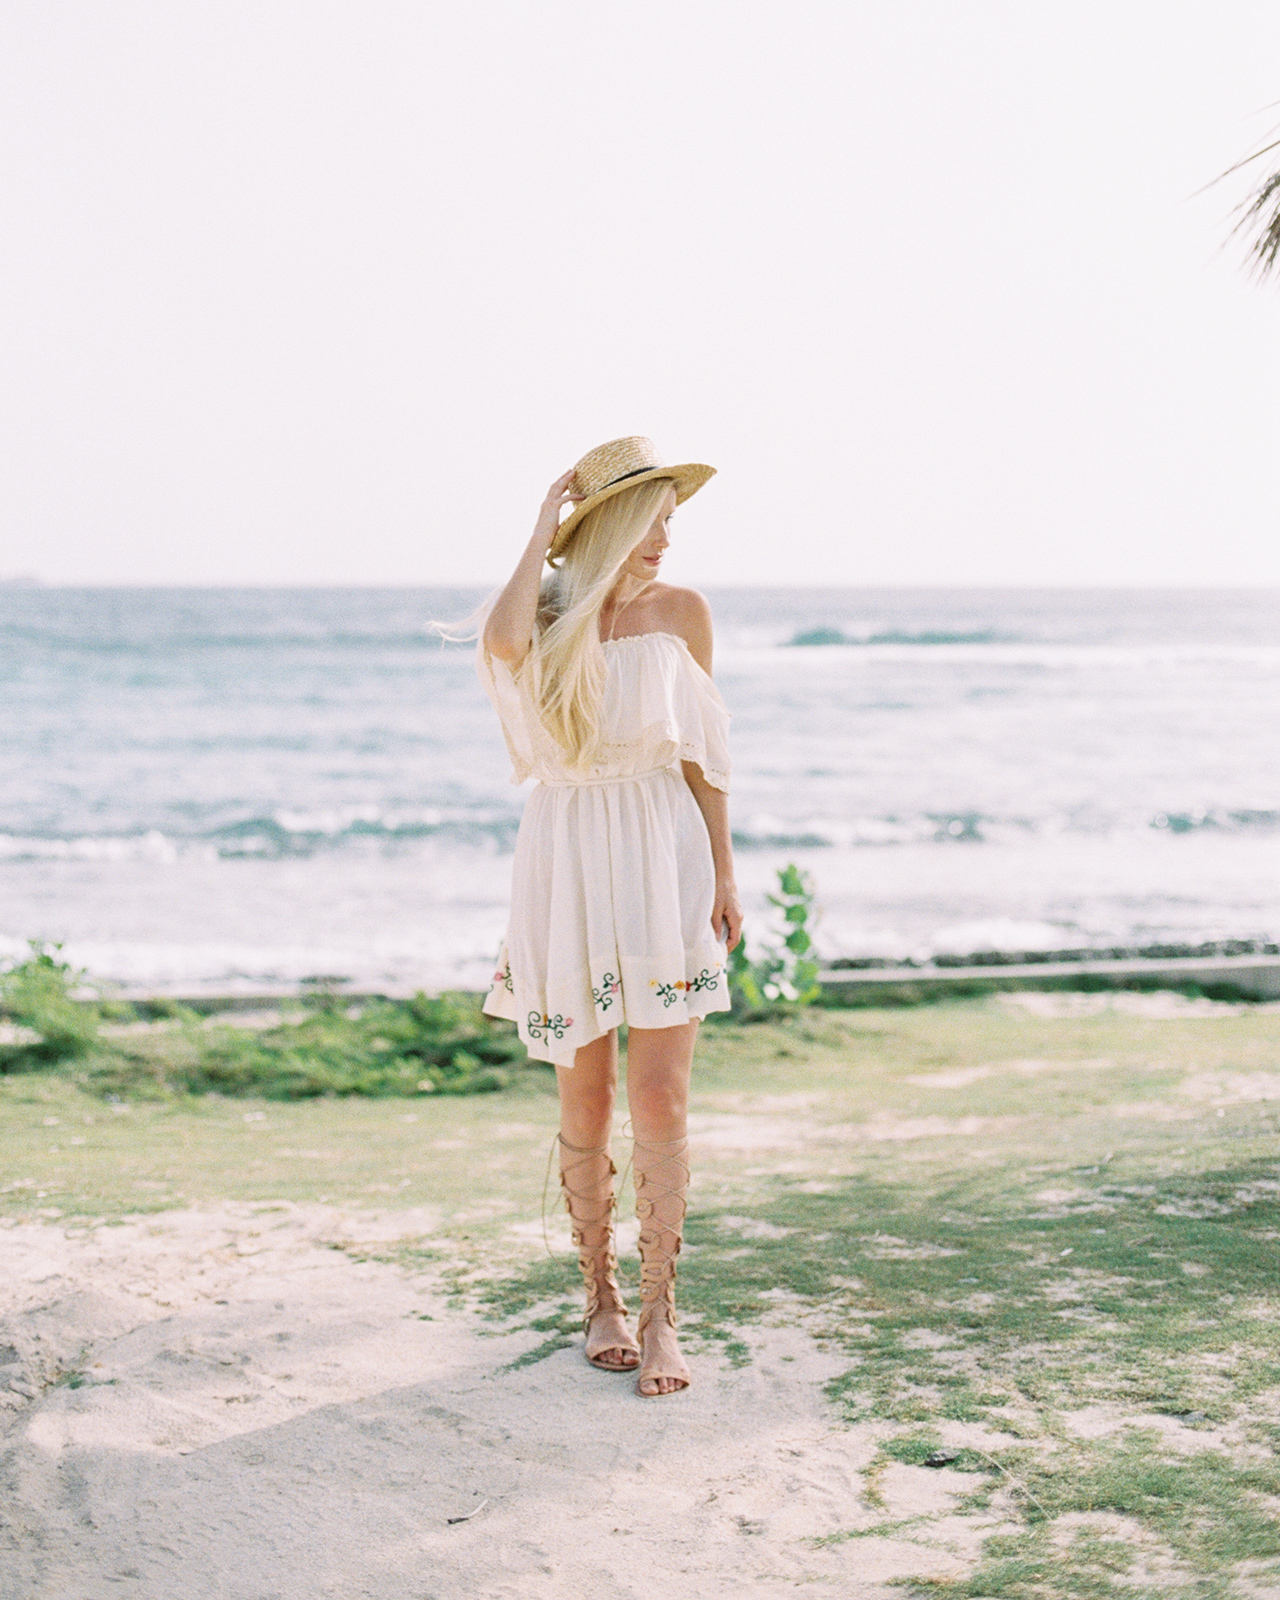 woman walking on beach in white dress with hat